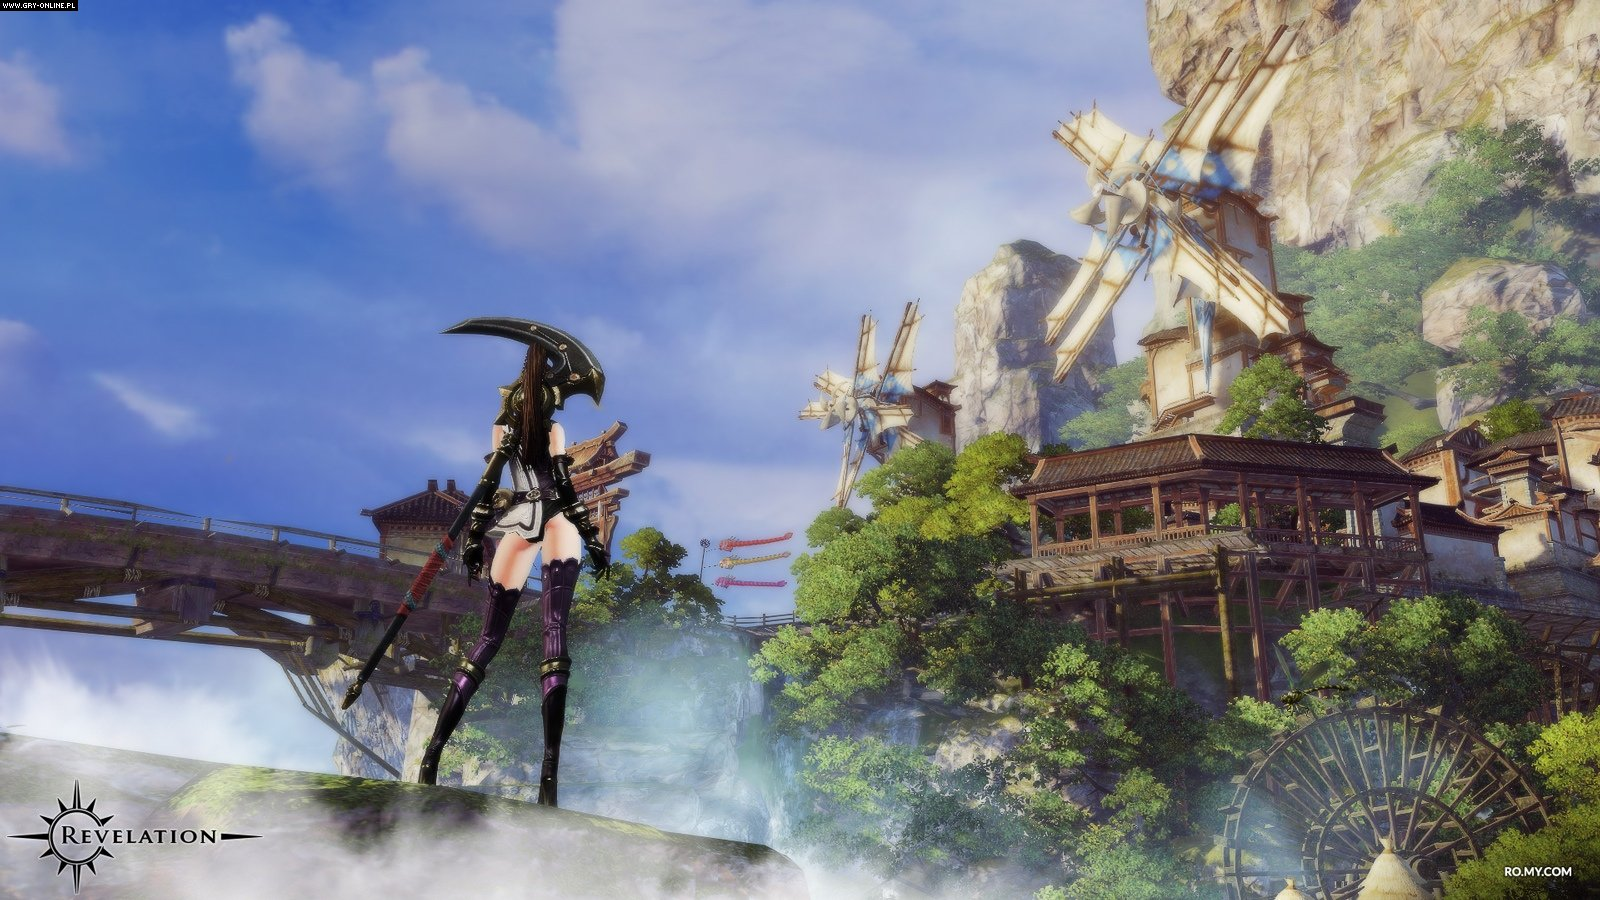 Revelation Online PC Gry Screen 7/10, NetEase, My.com